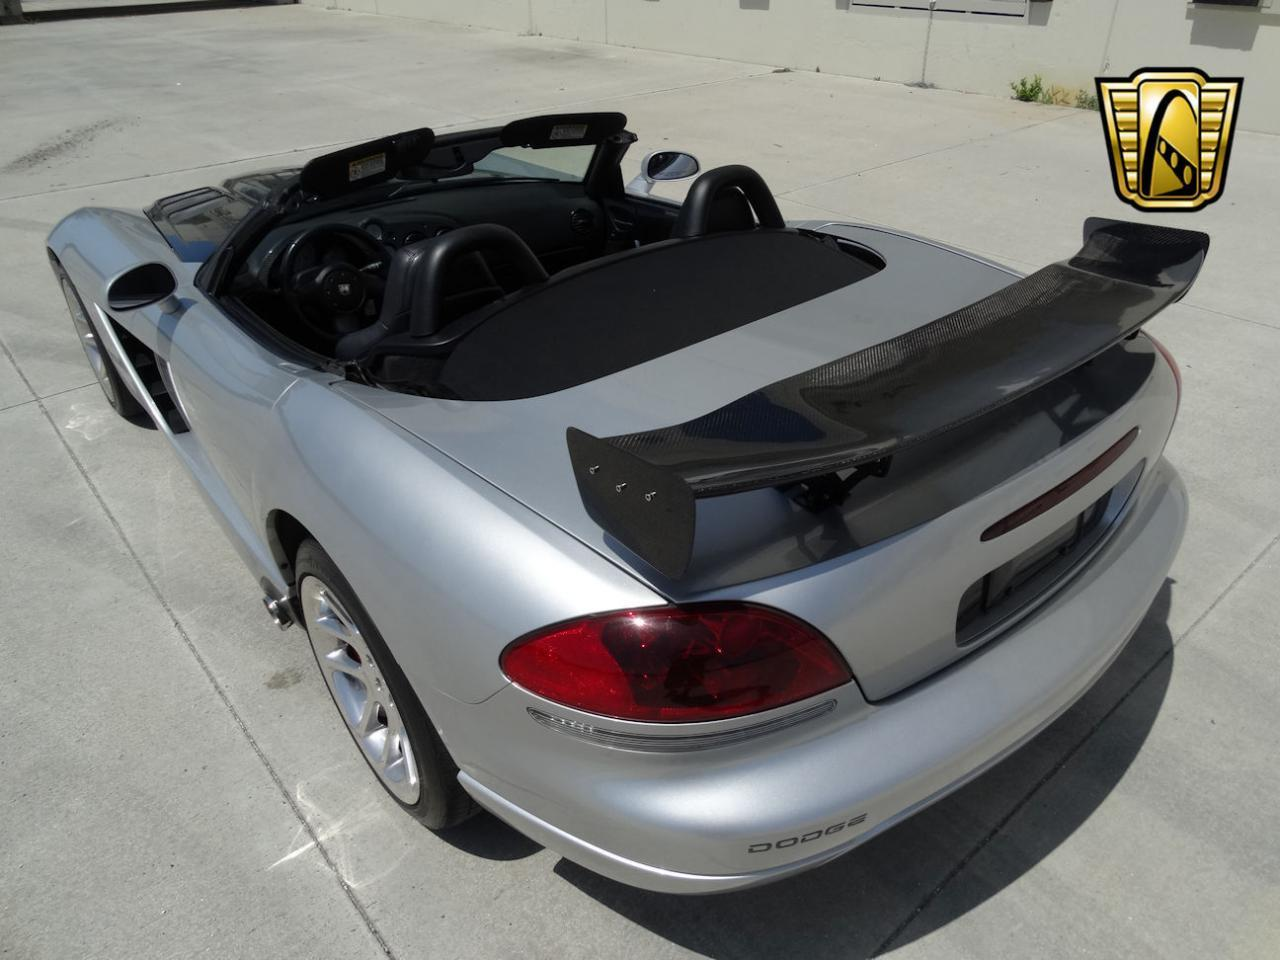 Large Picture of 2004 Viper located in Florida Offered by Gateway Classic Cars - Fort Lauderdale - L6GU